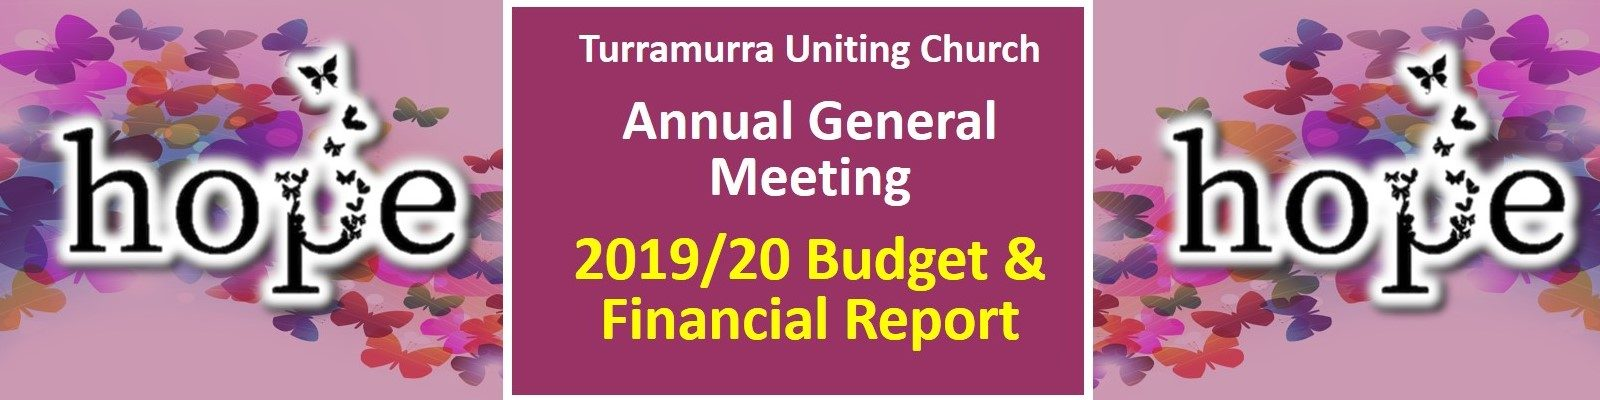 TUC AGM - 2019/20 Budget and Financial Report